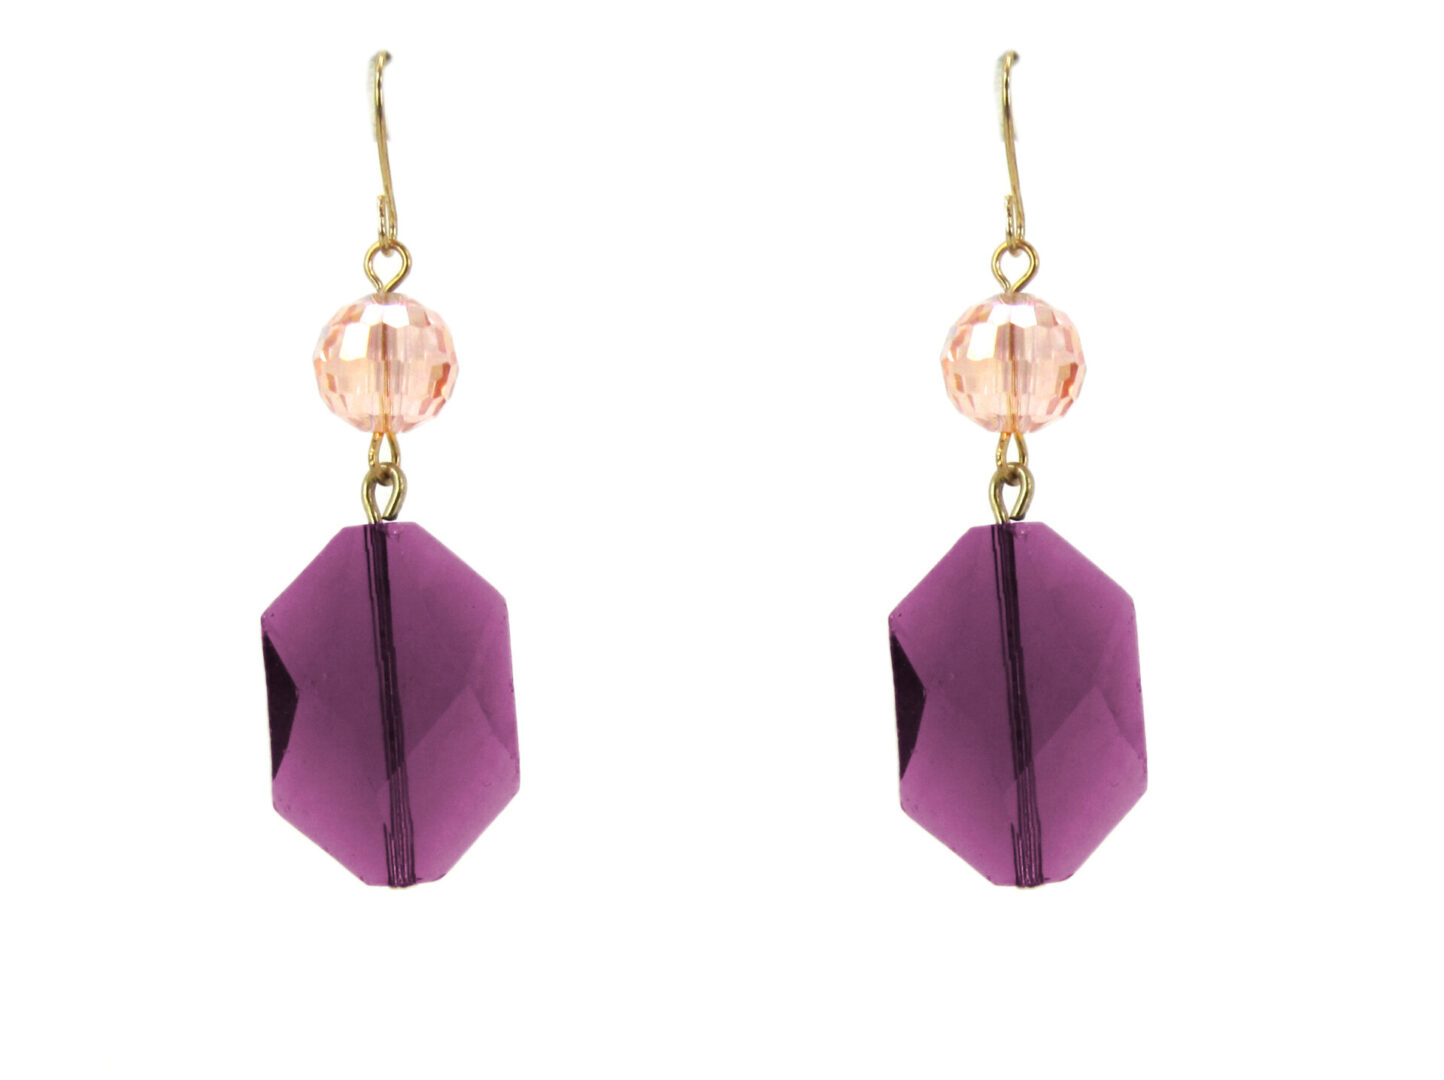 earrings with octagonal violet crystals